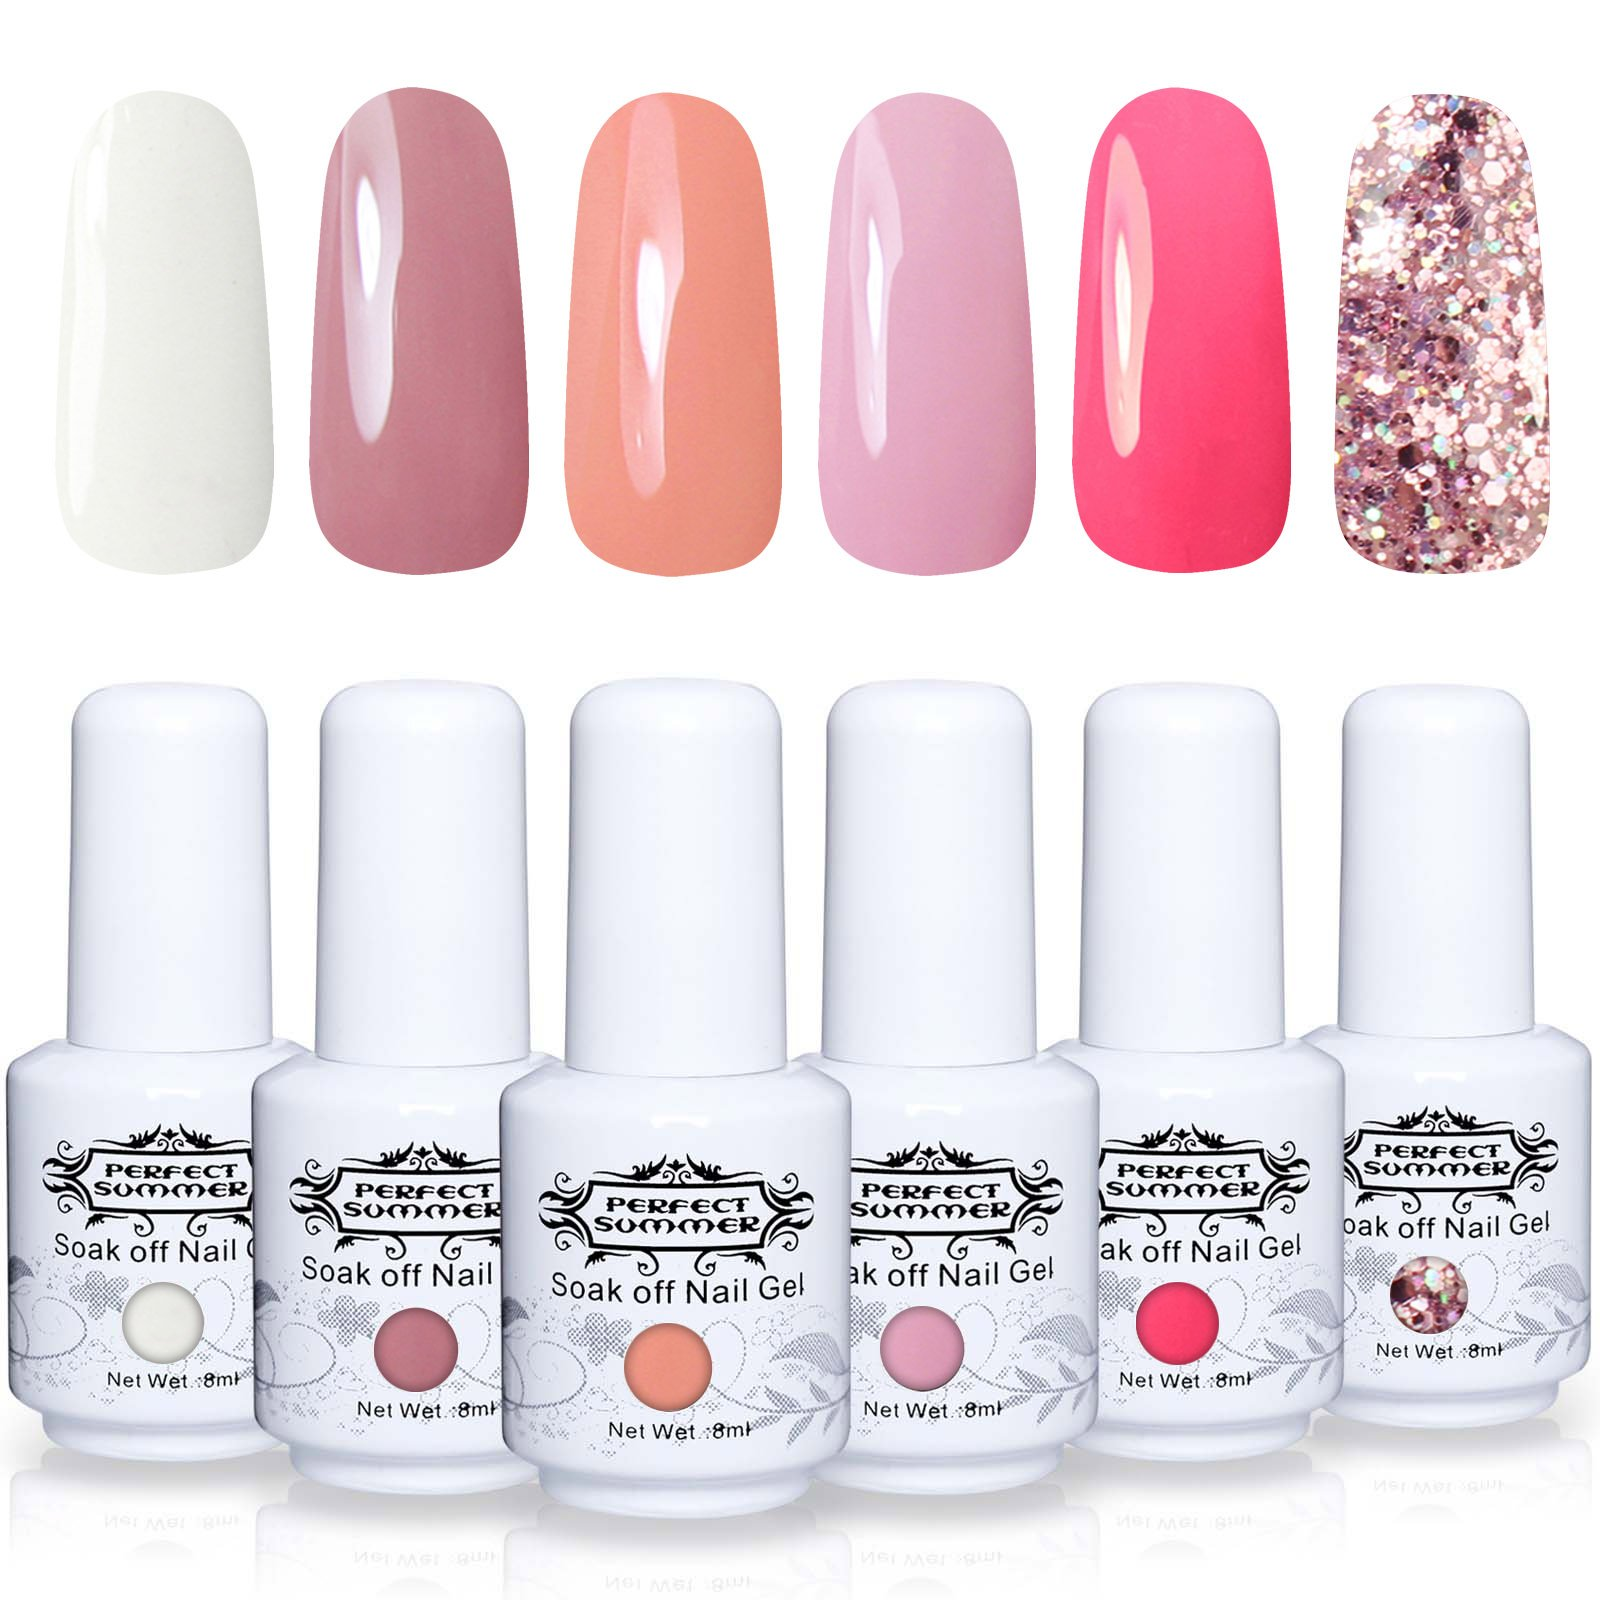 Perfect Summer Soak Off Nail Gel Polish - UV LED Gel Polish Varnish Autumn Winter Series Collection Pack of 6 Coral White Pink Colors Trend Gift Set 8ML 005 by Perfect Summer